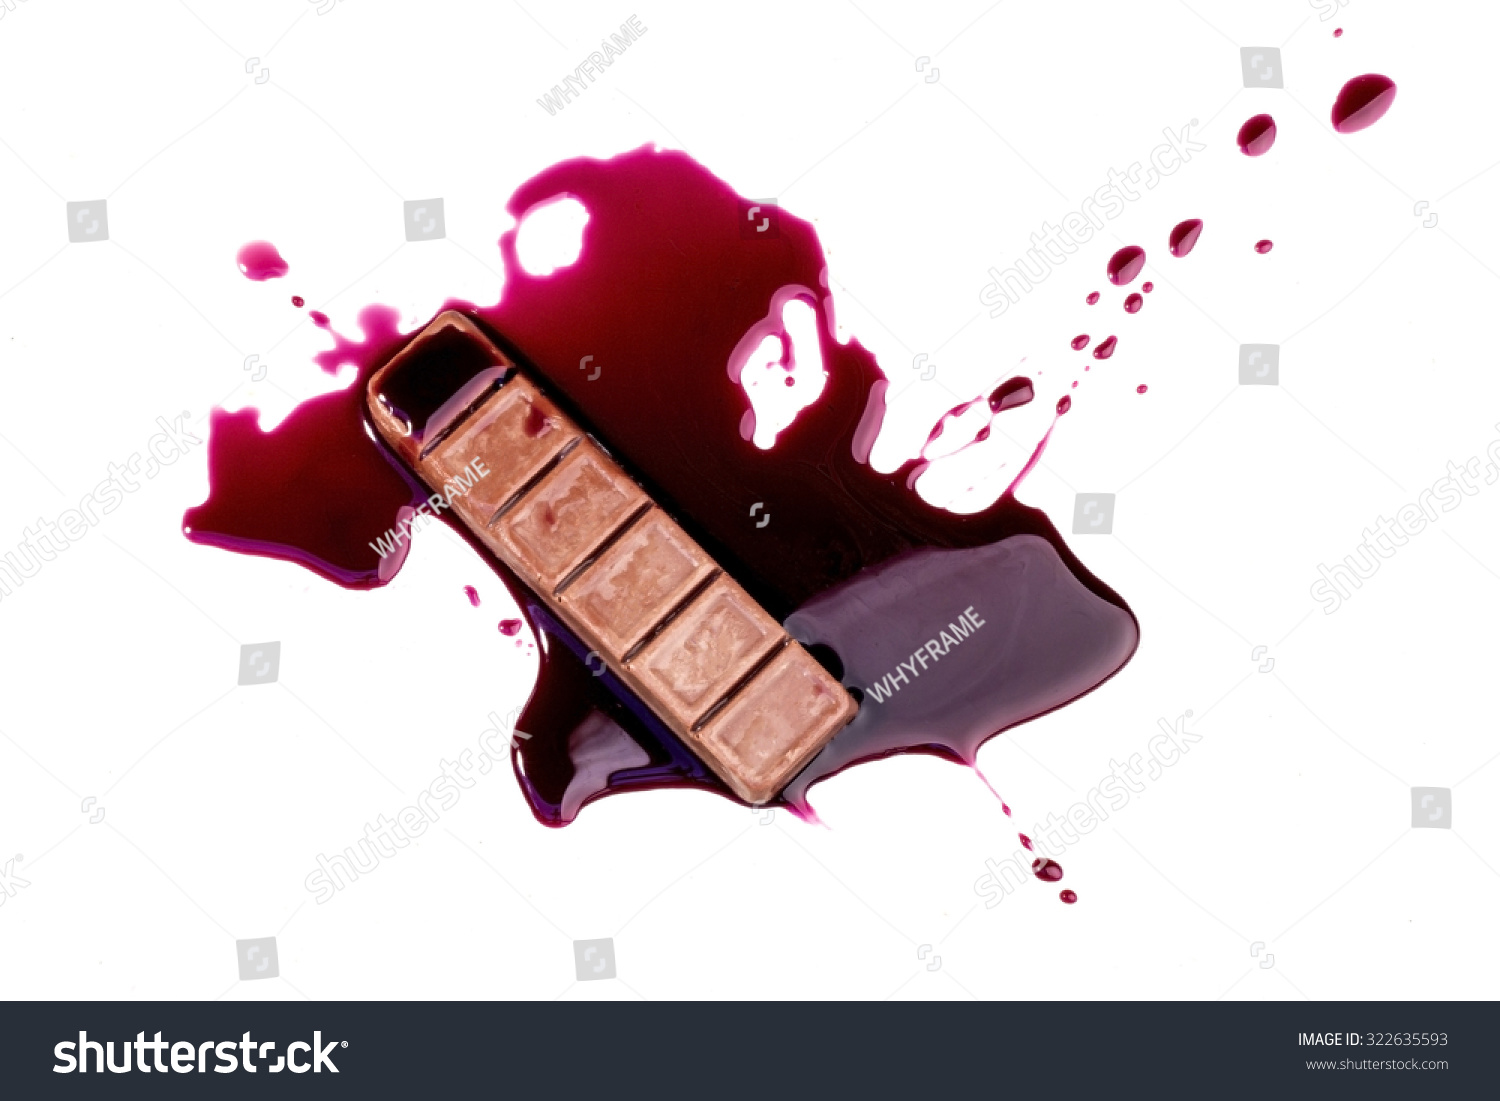 Chocolate blood dripping symbol image mean stock photo 322635593 chocolate with blood dripping symbol image mean fat is risk to your health biocorpaavc